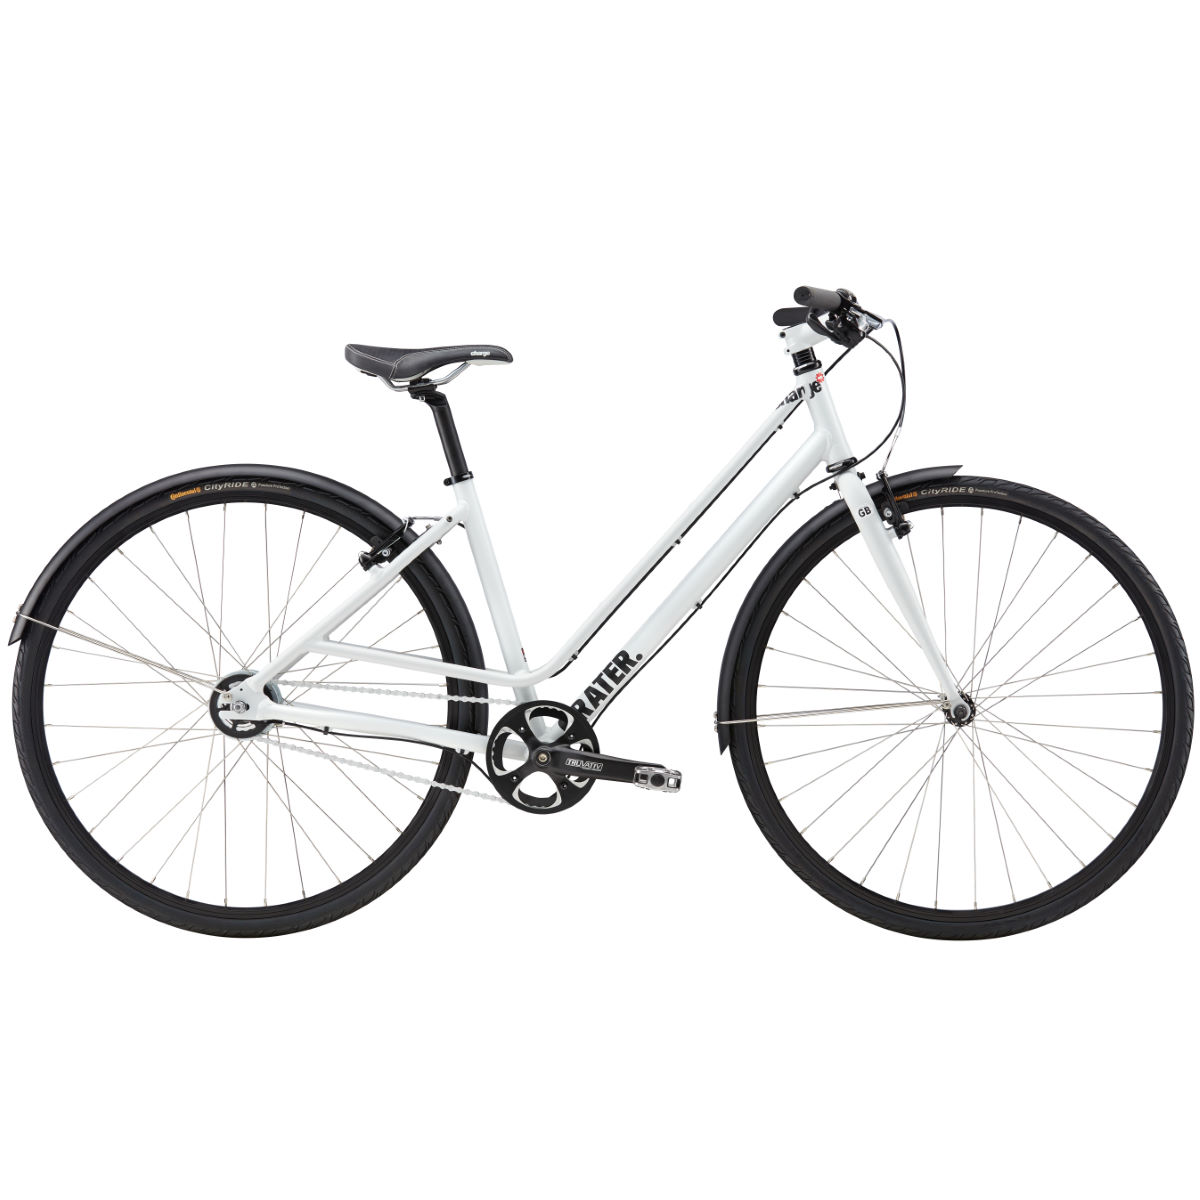 Vélo Charge Grater Mixte 2 (hybride, Alfine, 2017) - LG Stock Bike Cool Grey Vélos hybrides & ville